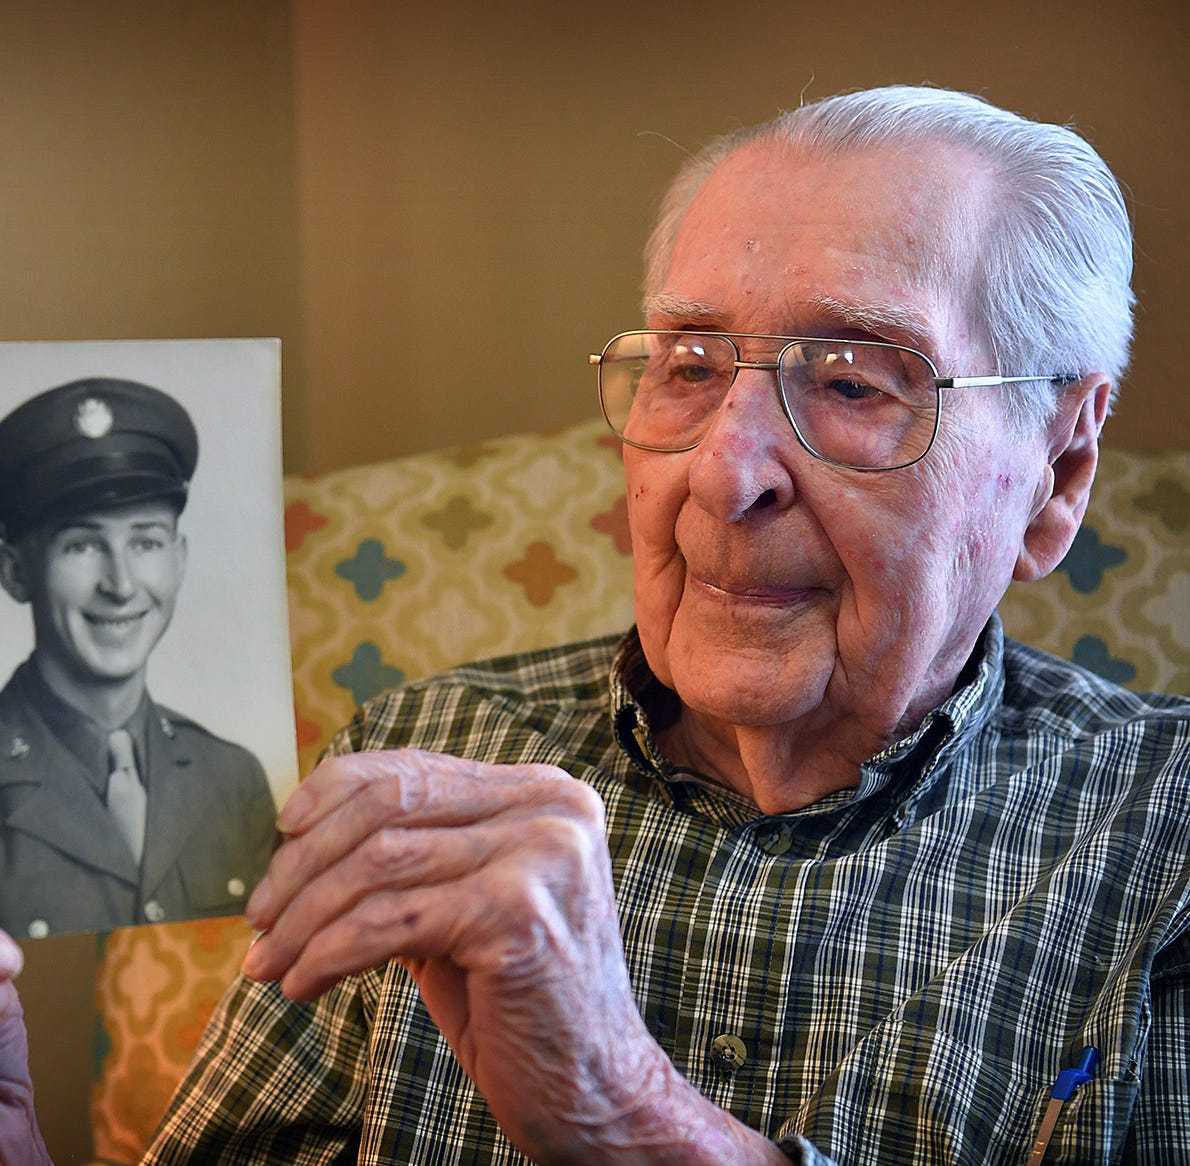 What is the greatest gift you can give a Texas WWII vet for his 100th birthday?